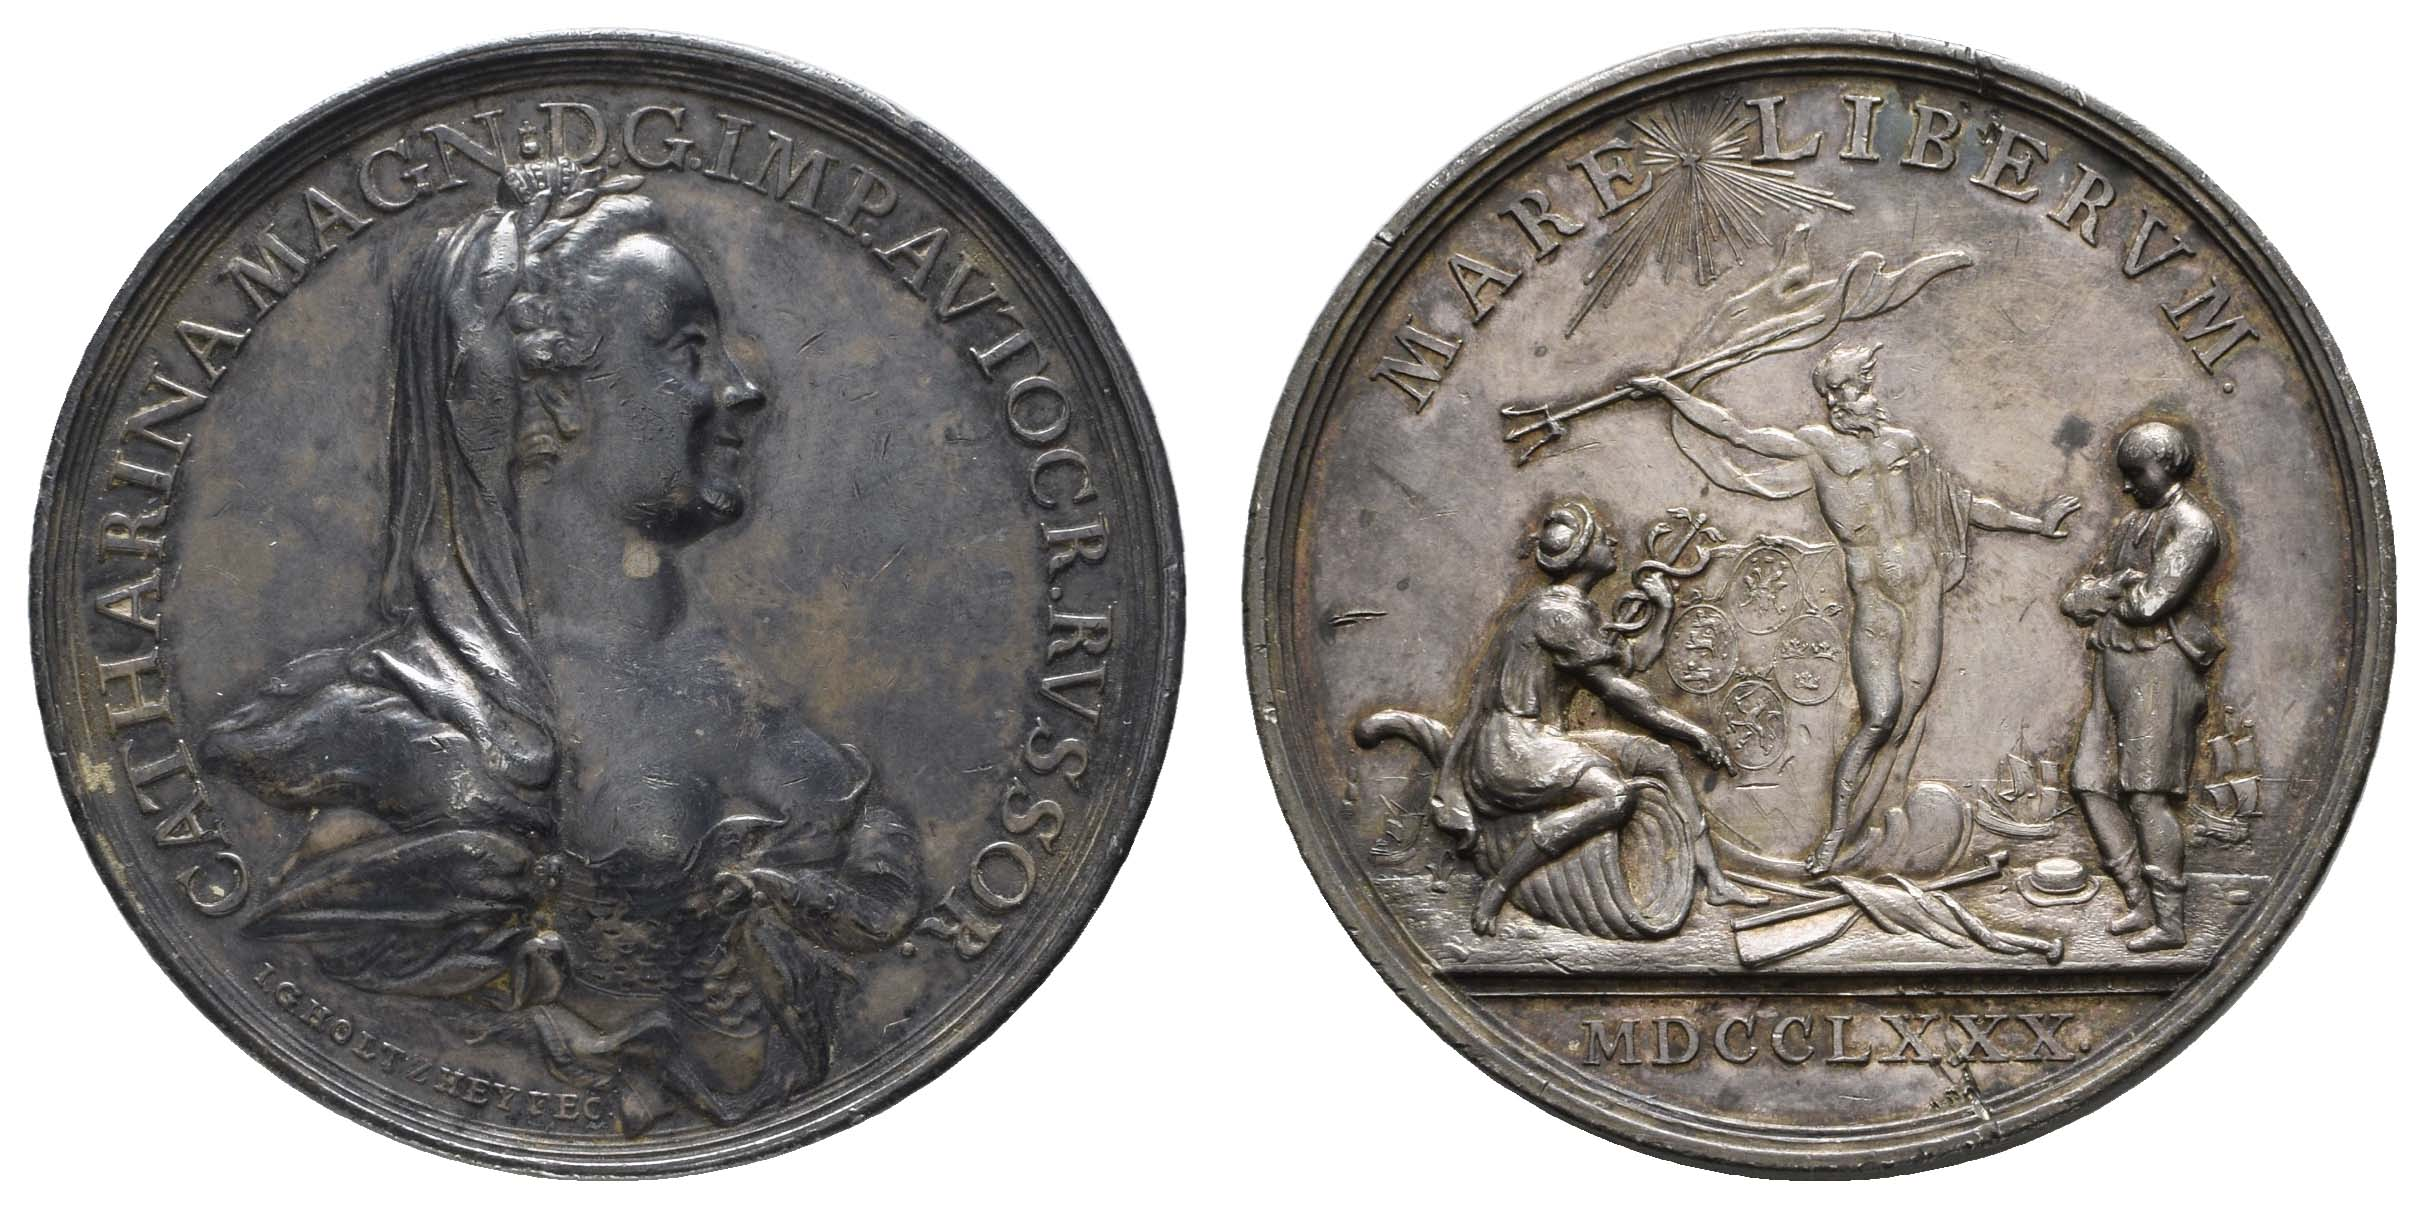 Lot 1212 - Europa_bis 1799_Russland  -  Auktionshaus Ulrich Felzmann GmbH & Co. KG Auction 170 International Autumn Auction 2020 Day 1